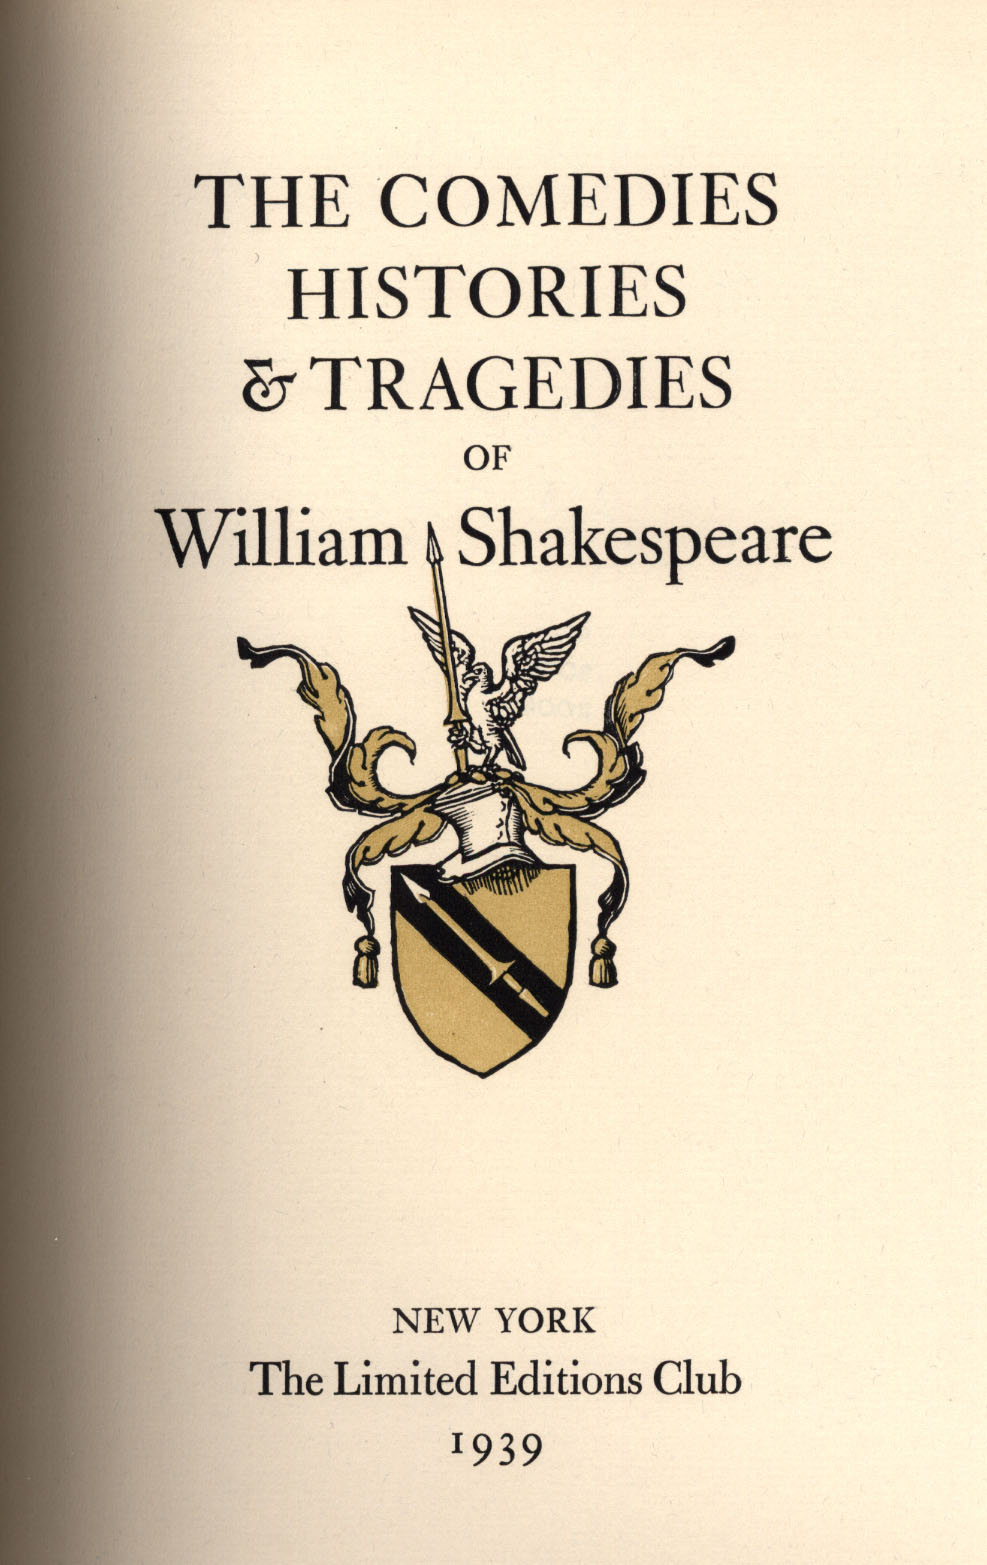 The Comedies, Histories and Tragedies of William Shakespeare